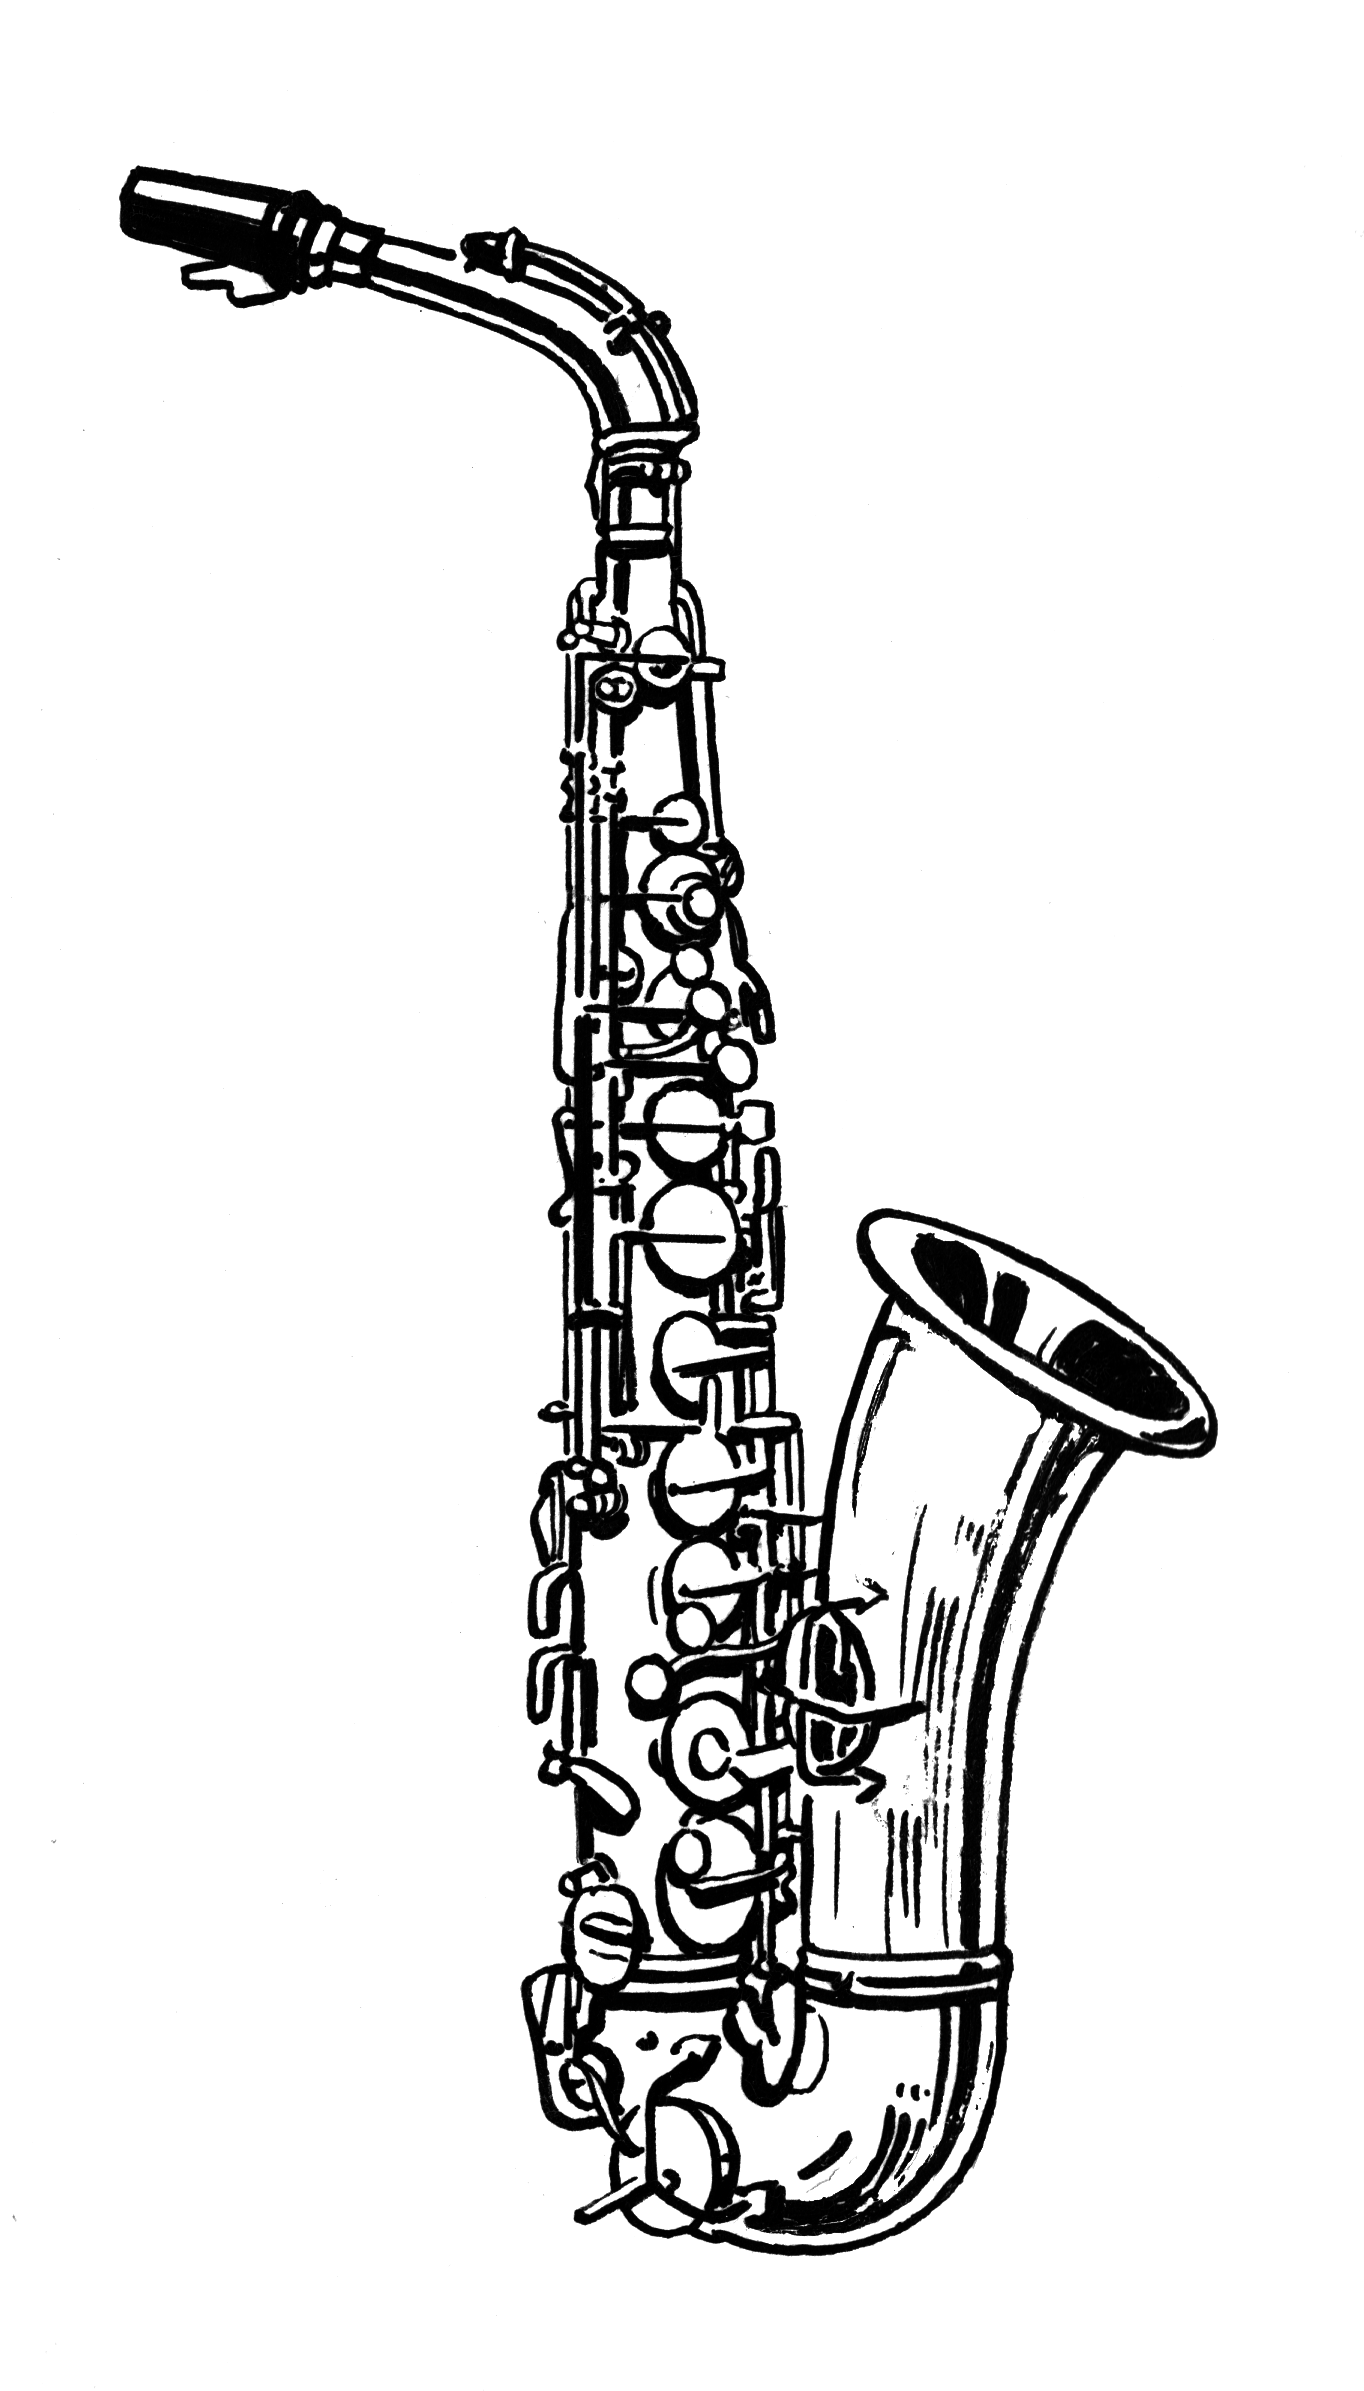 234319eb5 Photos Of Sax Clip Art | Sewing - EMBR Line Art in 2019 | Music ...